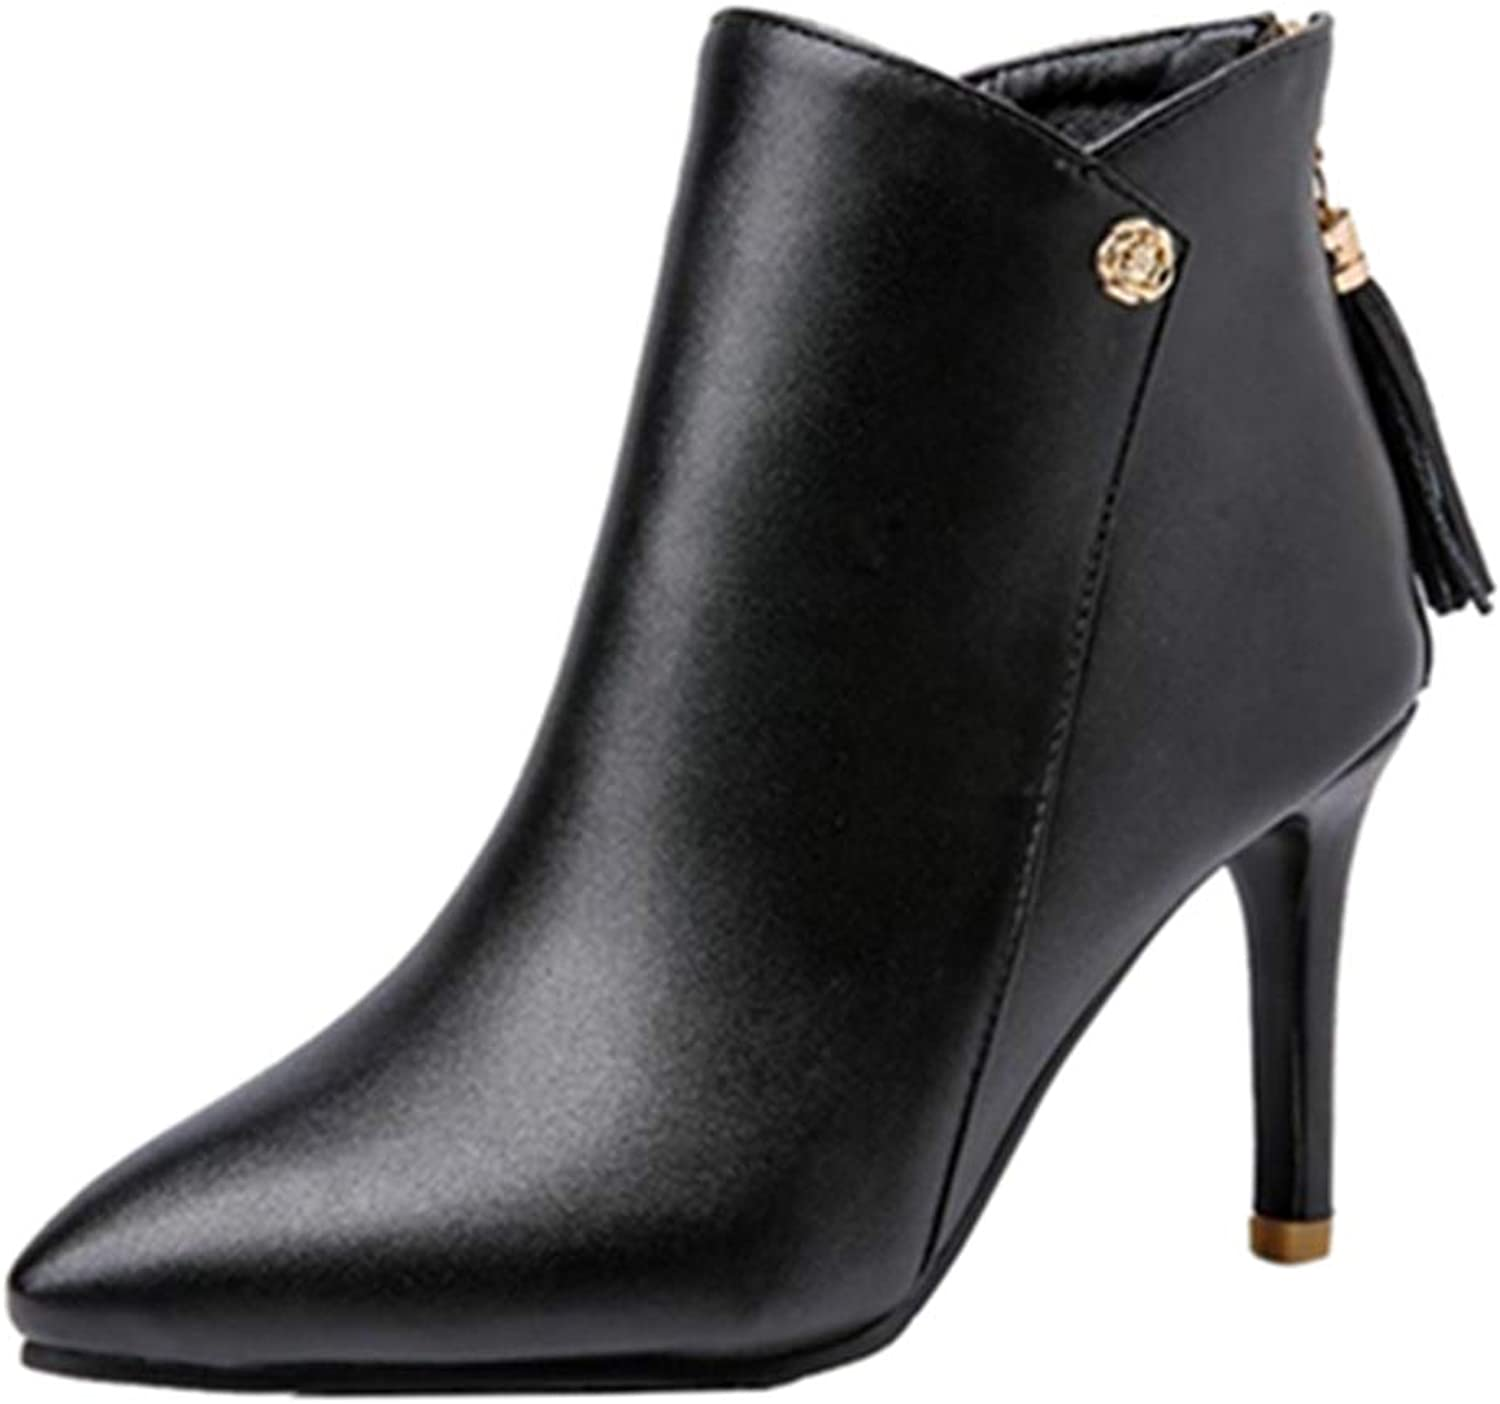 Smilice Women Fashion Ankle Boots